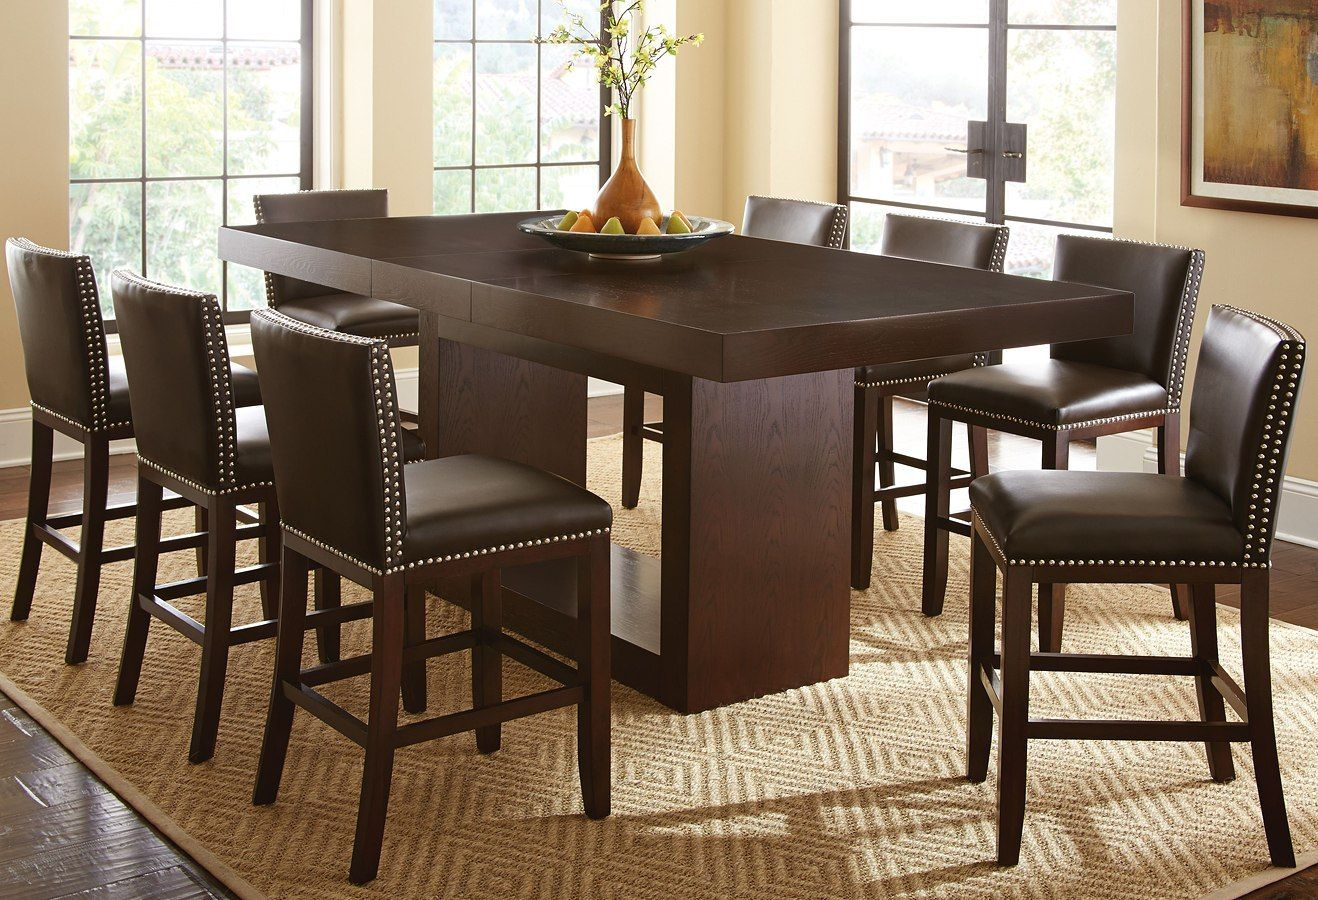 Antonio Counter Height Dining Set W Brown Tiffany Chairs Counter Height Dining Table Counter Height Dining Table